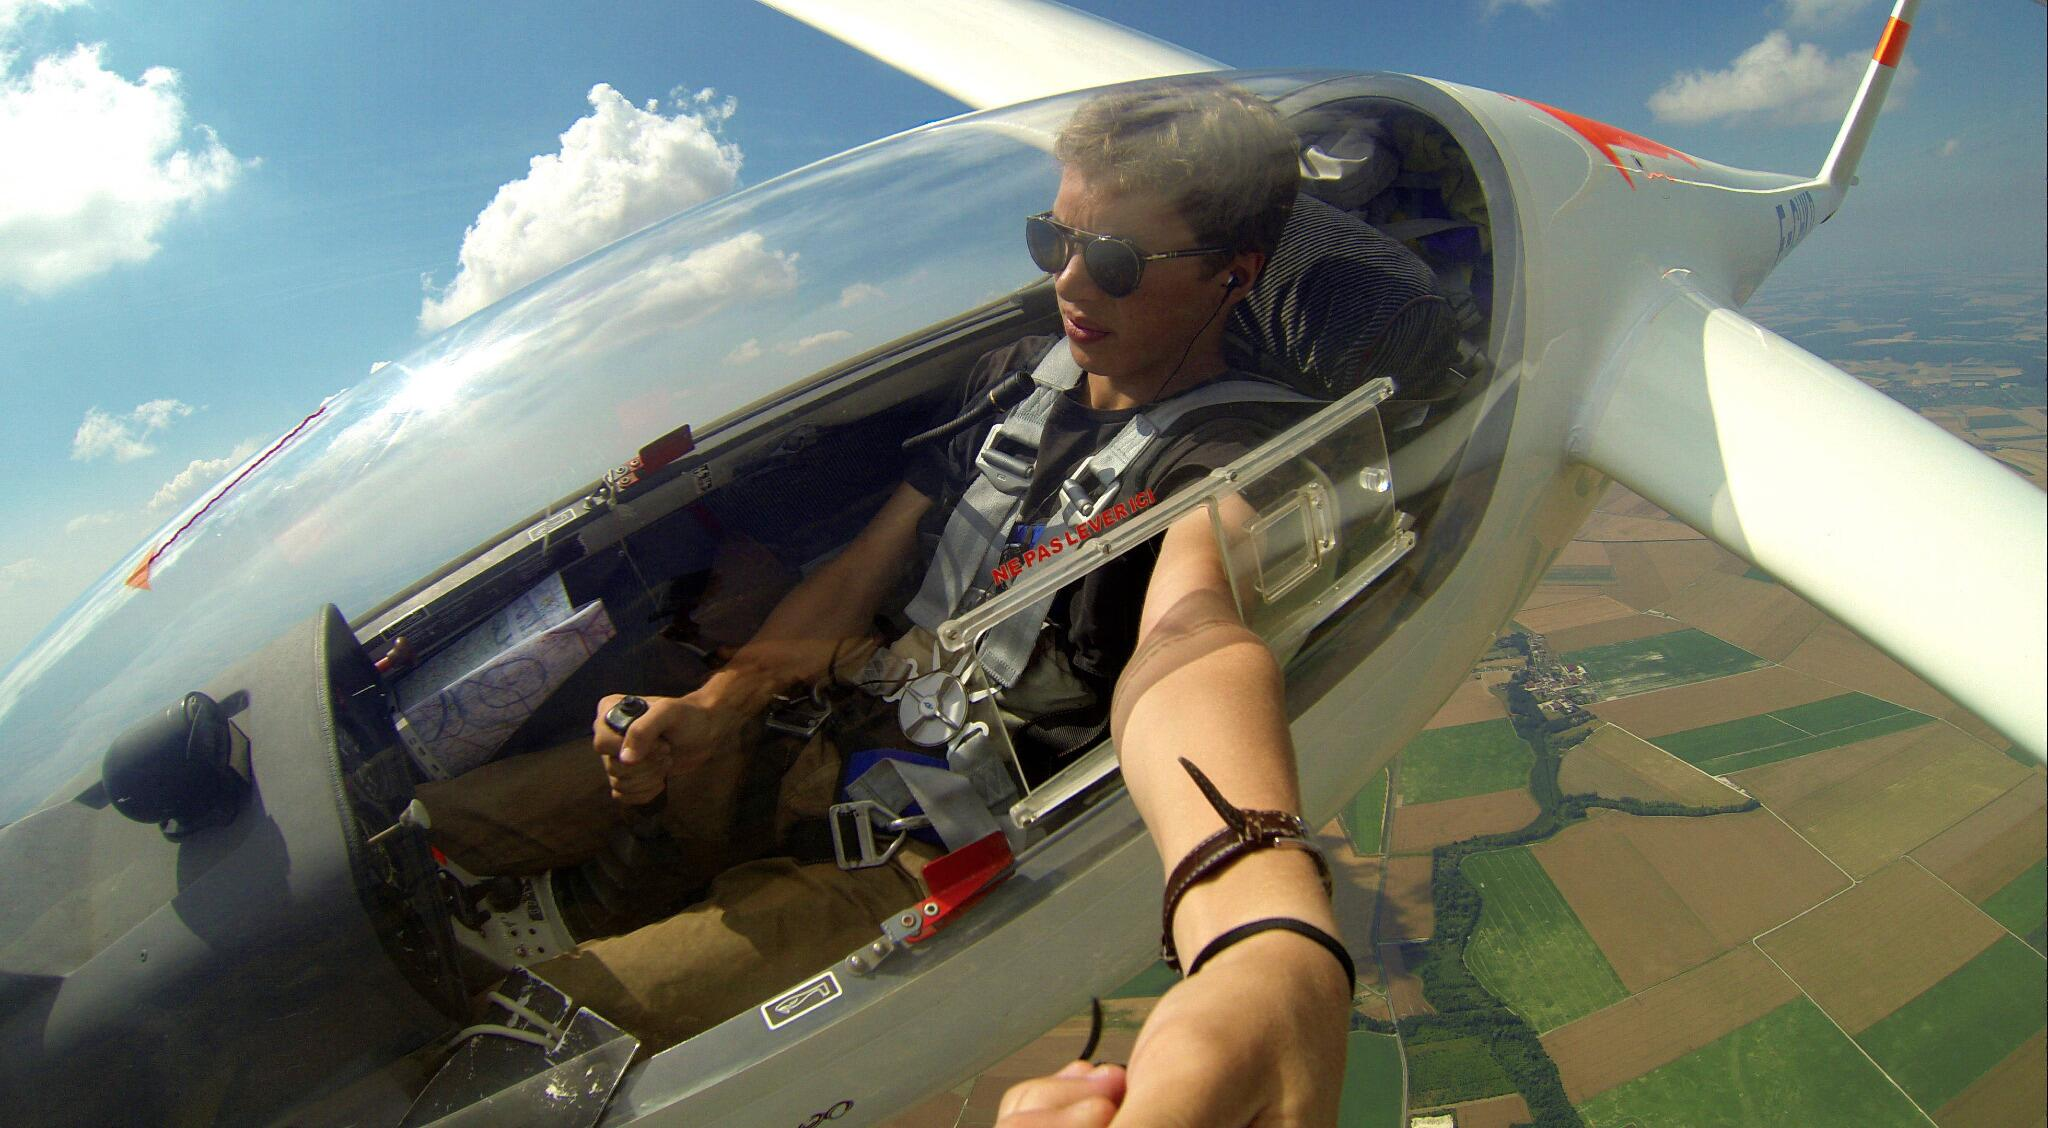 GoPro user Jean-Baptiste Perlade looking pretty chill soaring above the French countryside. http://t.co/GdmGs4JWB1